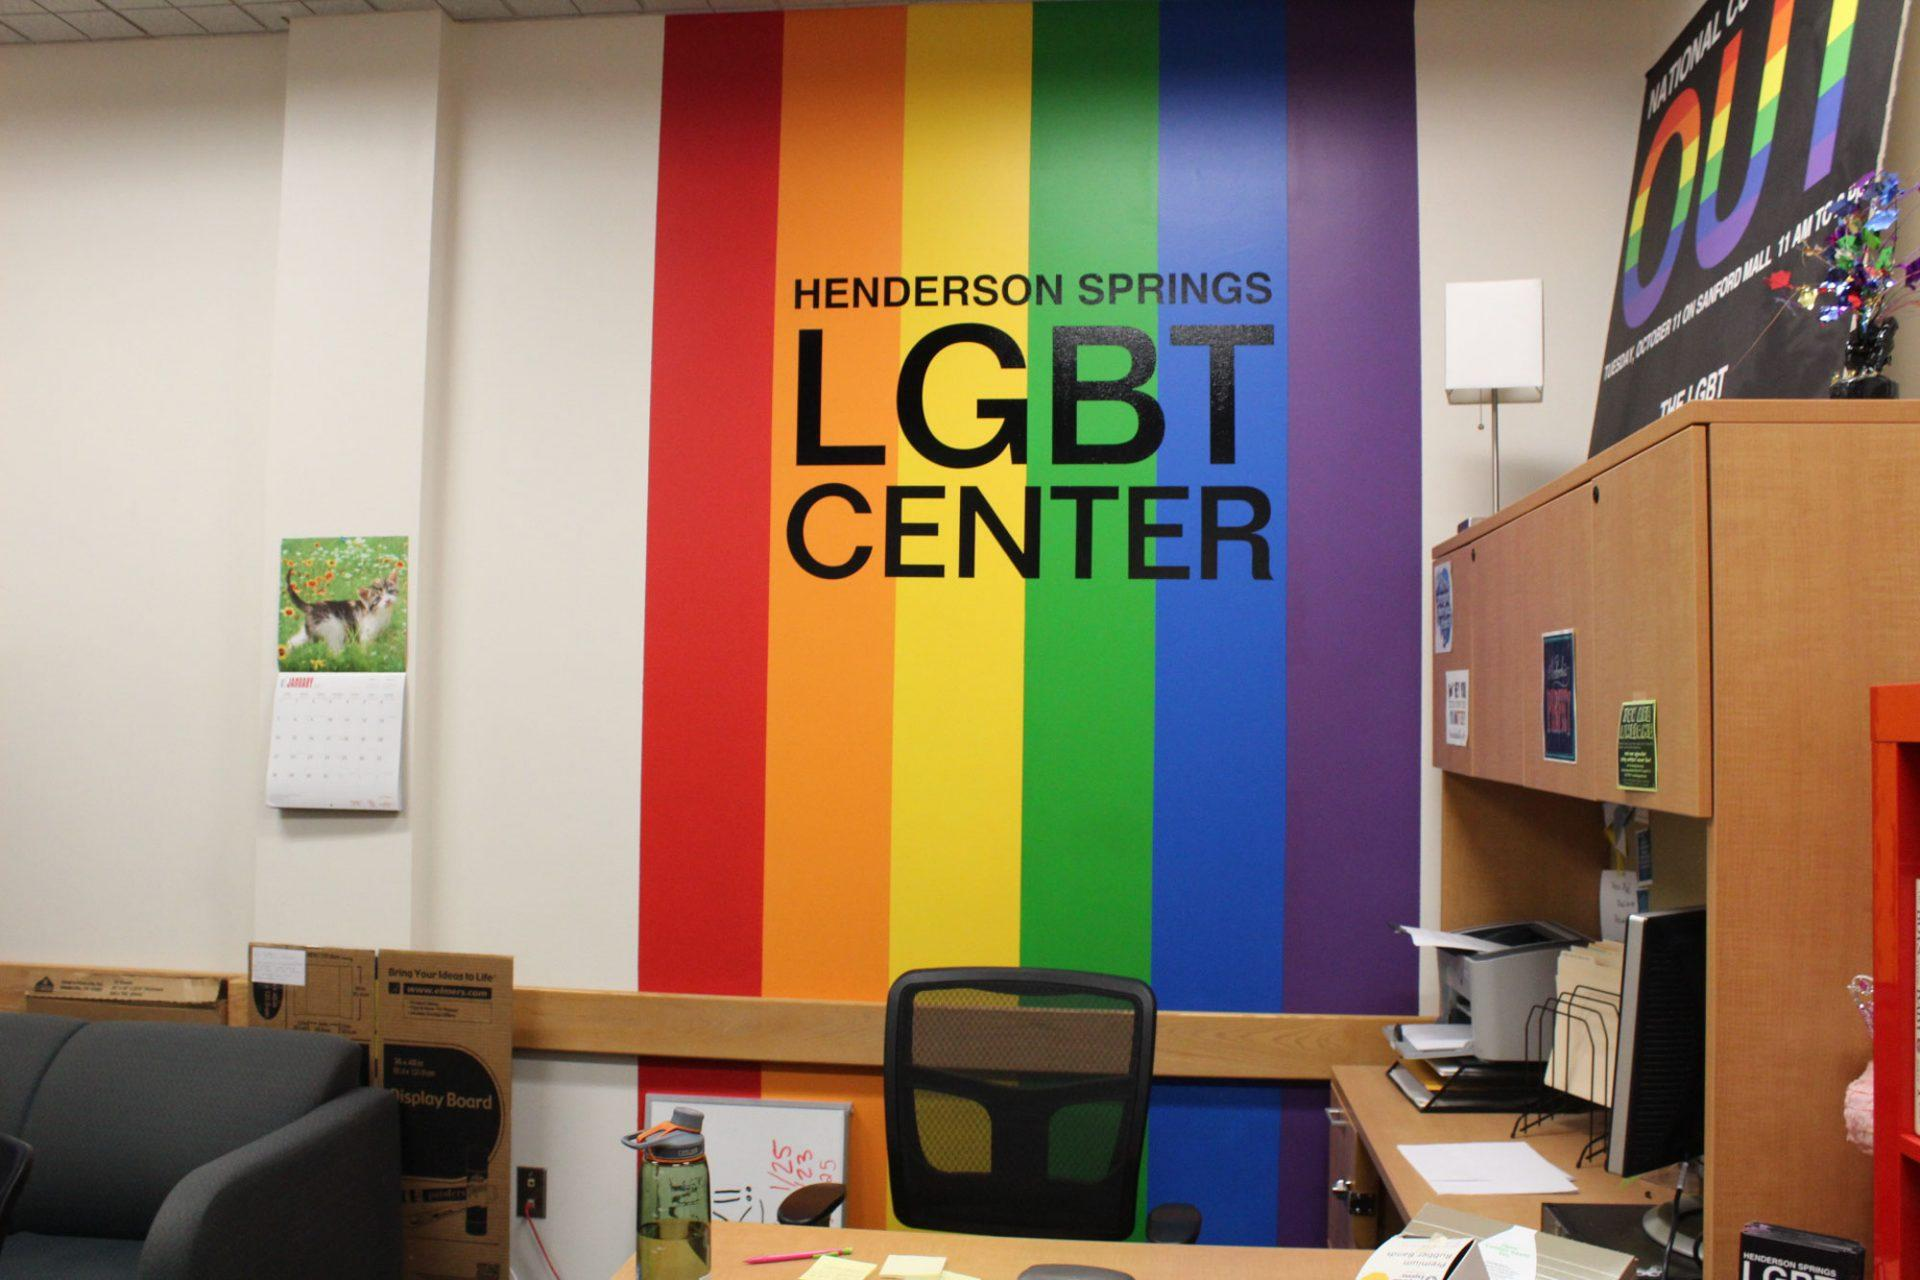 The Henderson Springs LGBT Center is located on the first floor, room 206 of the Plemmons Student Union.